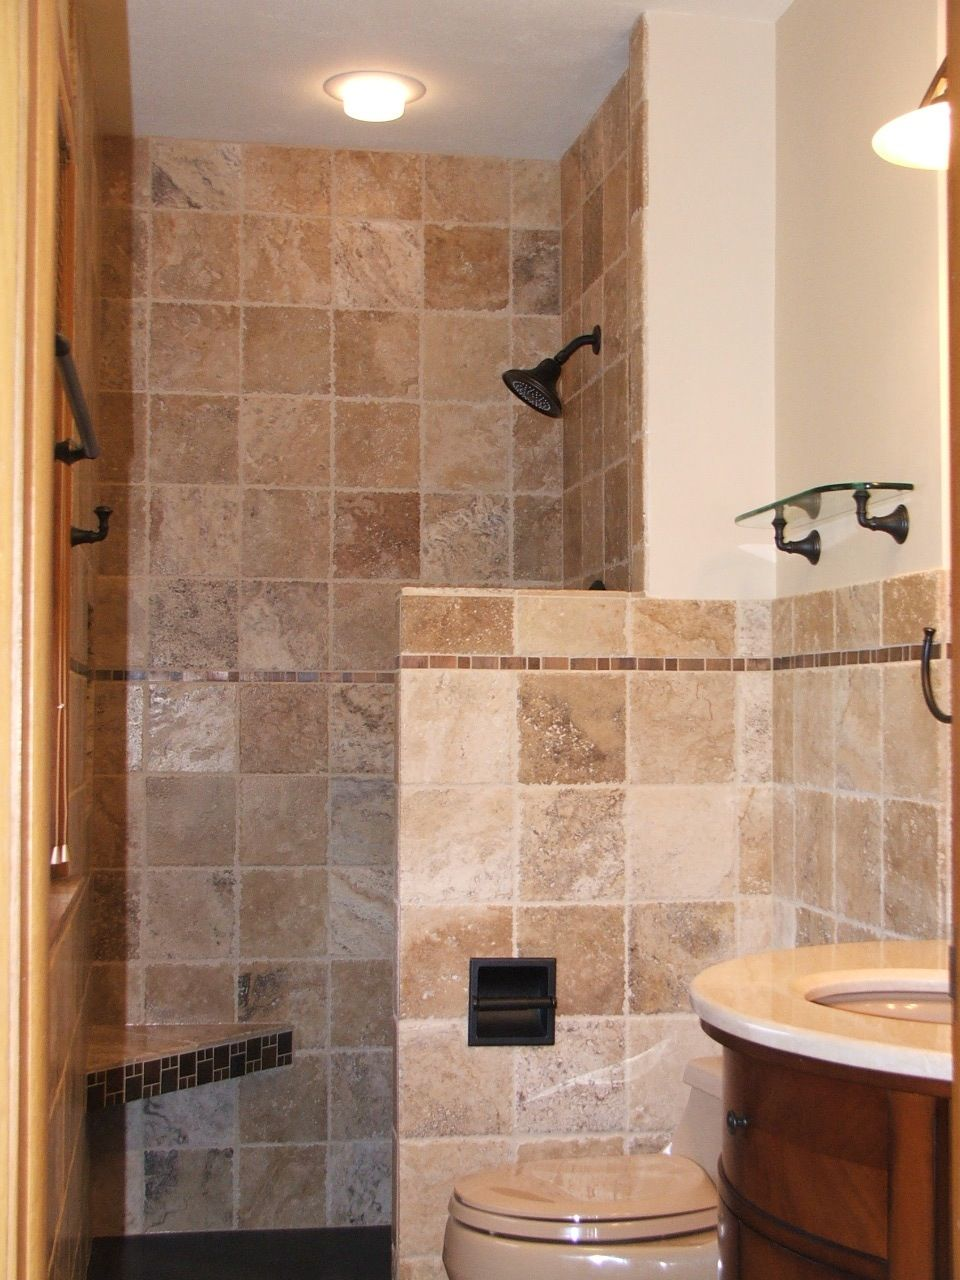 Tile is used artistically on the walls of this elegant bathroom ...